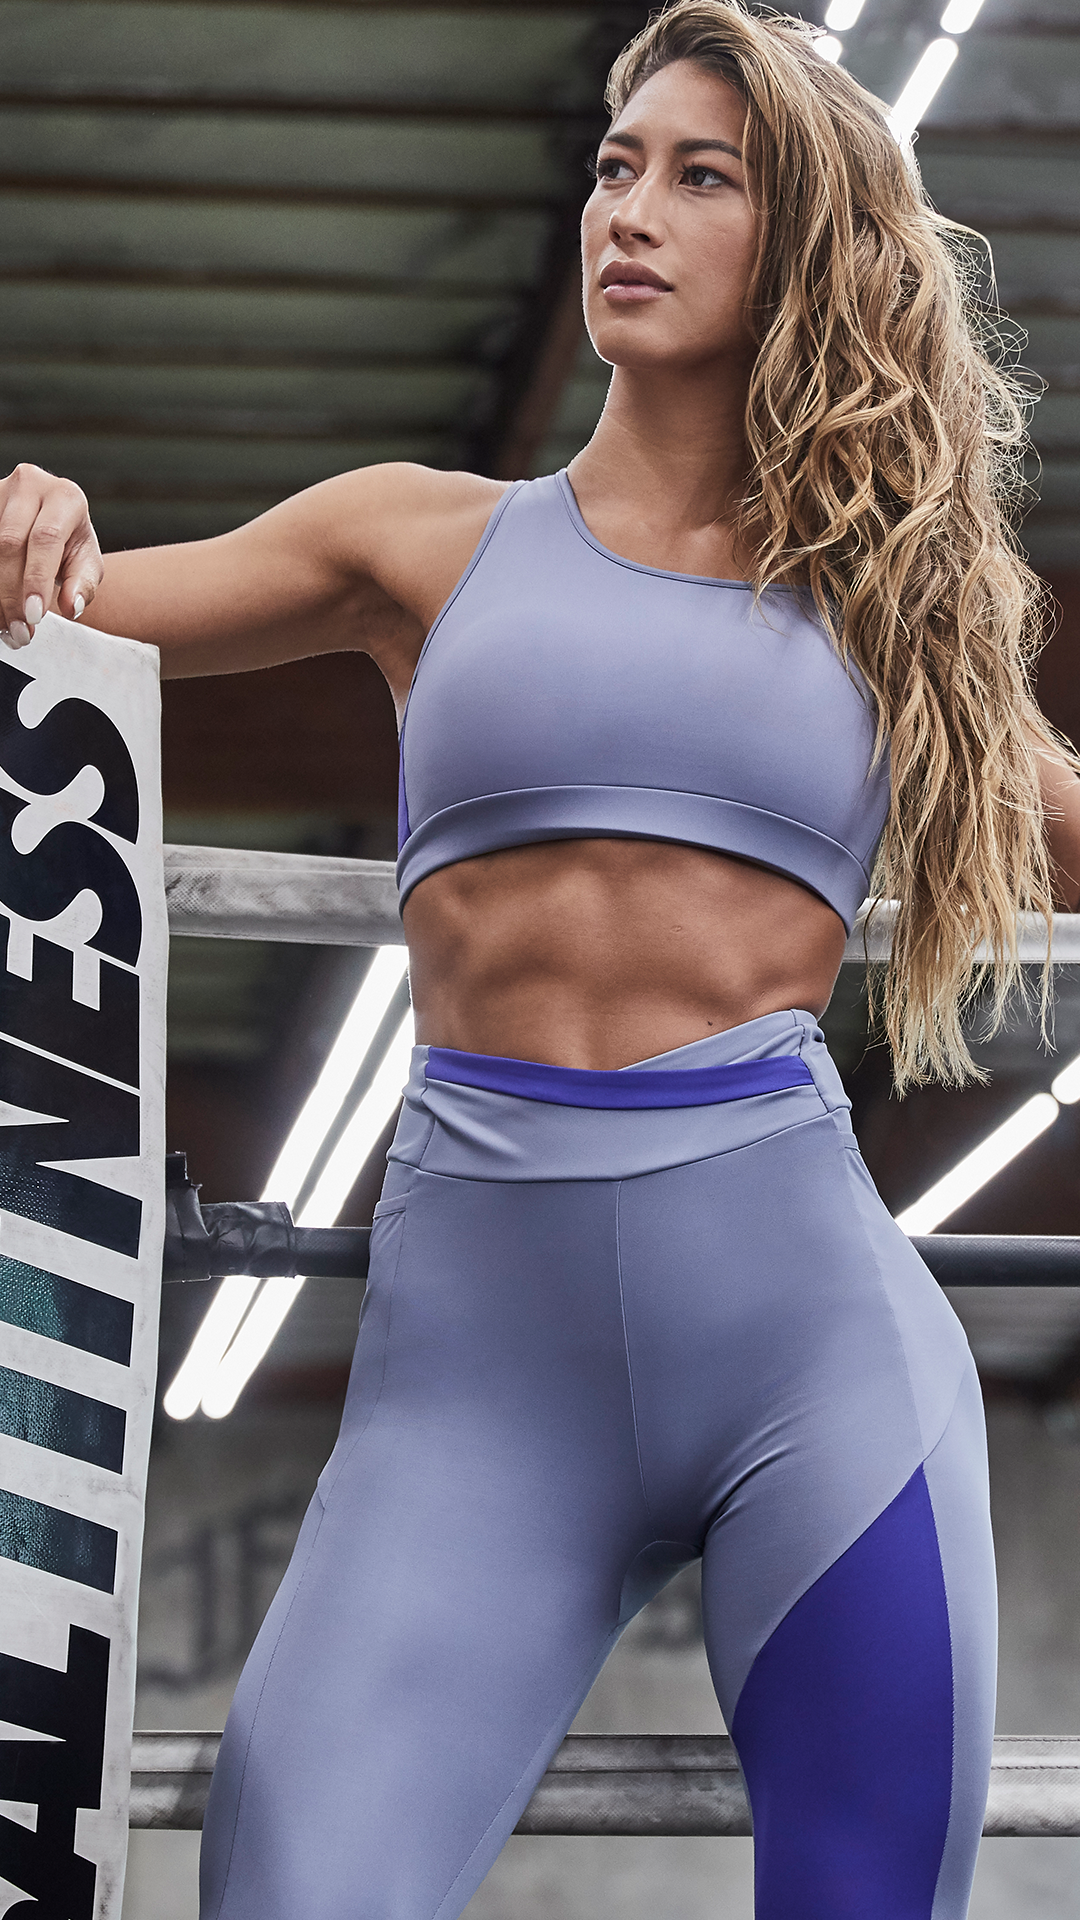 Blue Waves Workout Exercise Fitness Gym Sports Bra